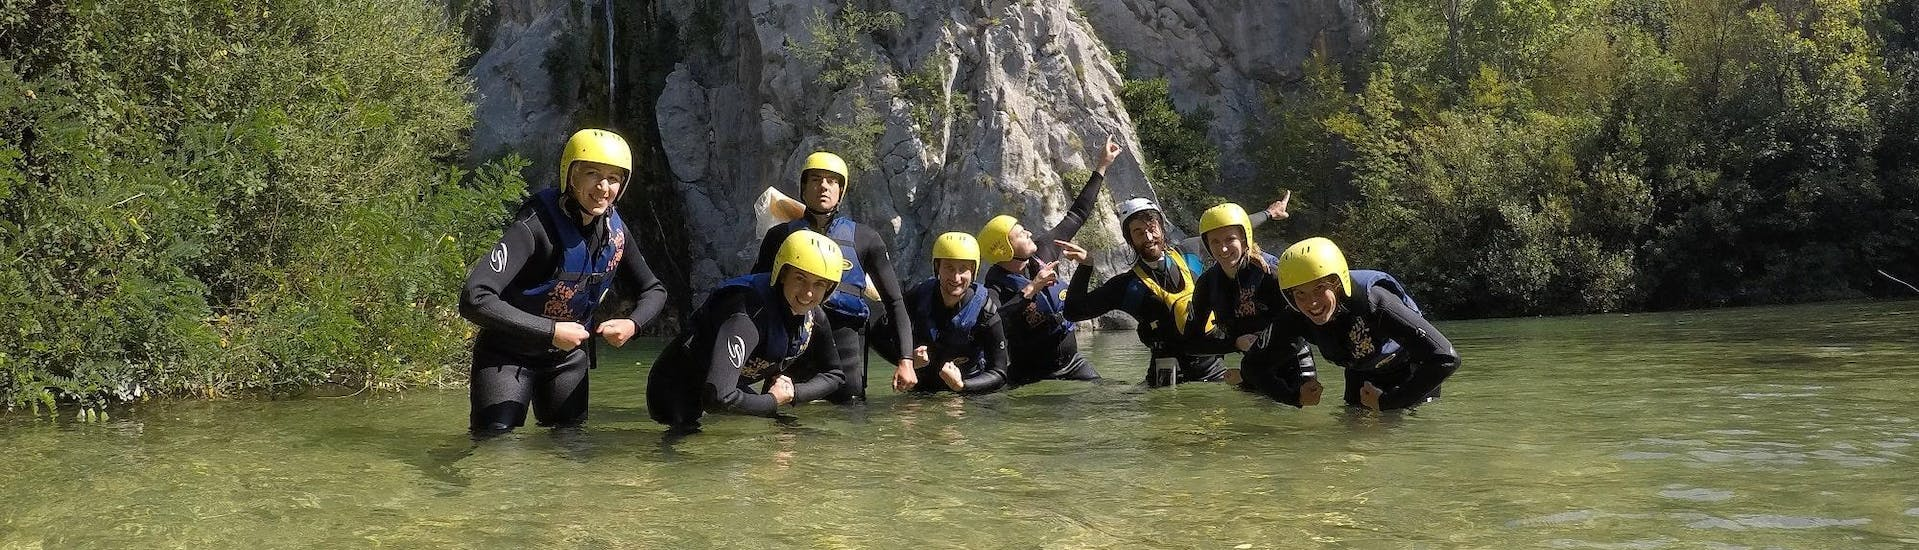 canyoning-basic---cetina-incl-city-transfer-from-split-active-365-hero